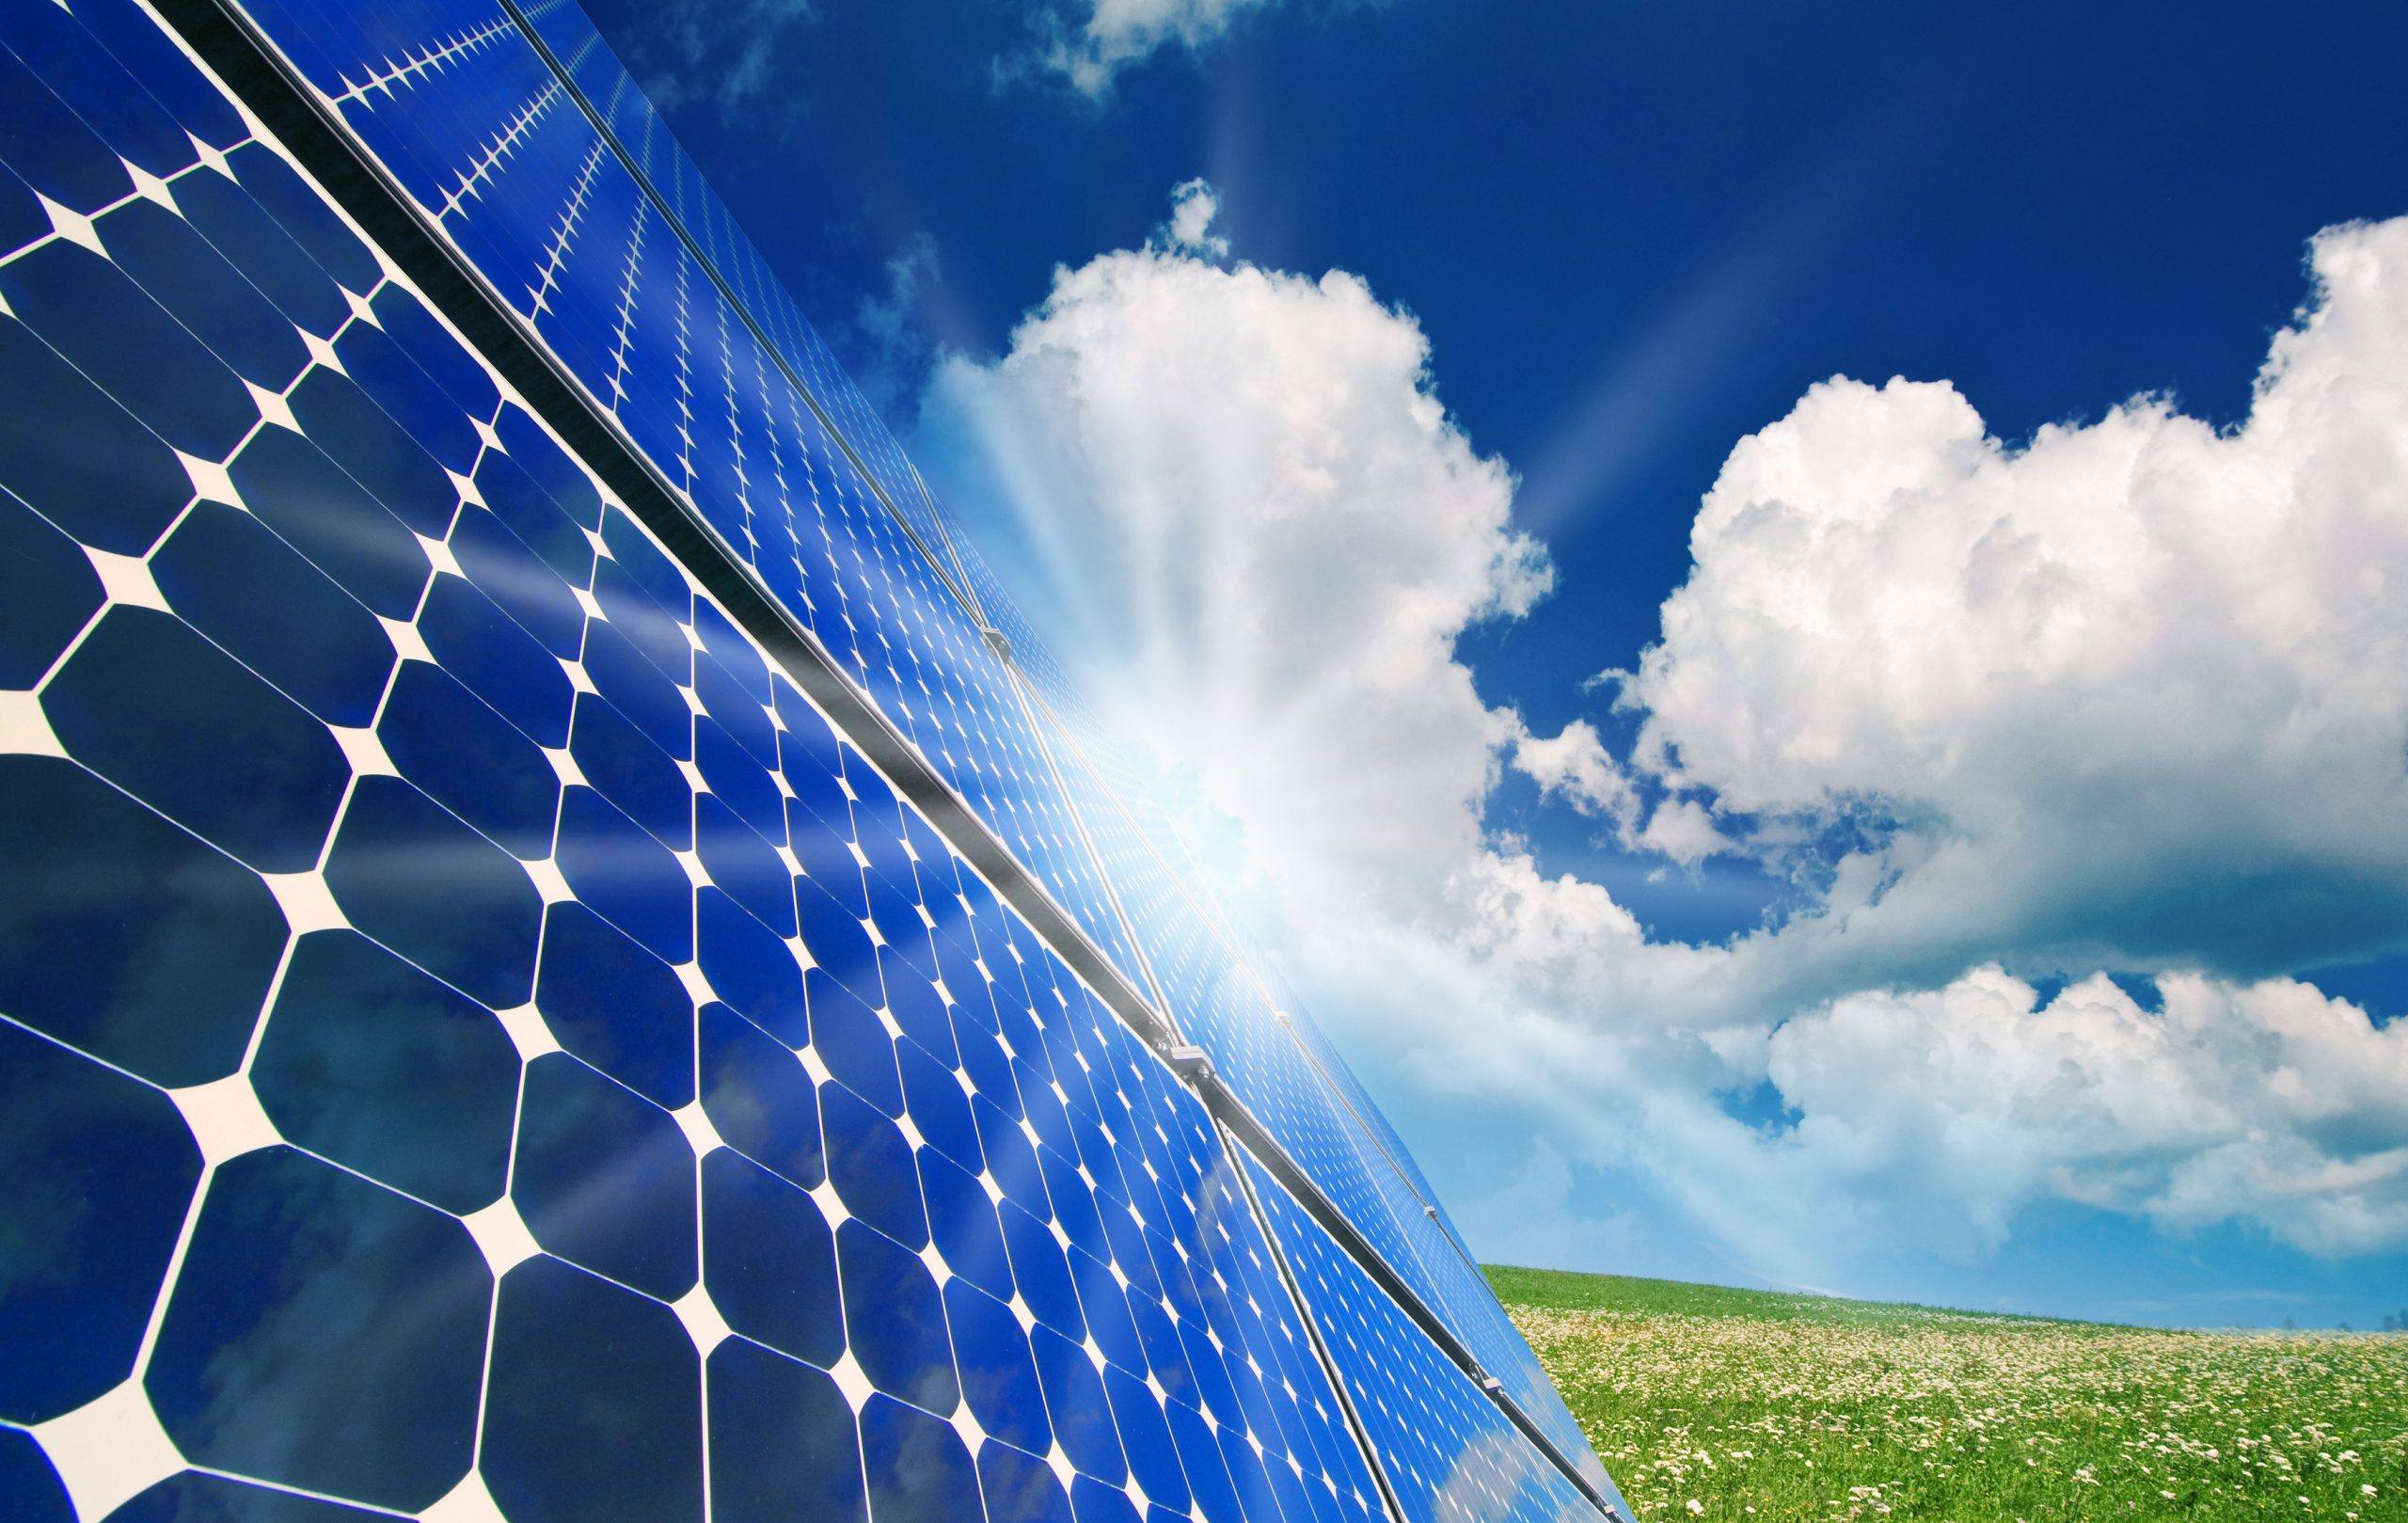 Scientists breakthrough could potentially be useful for manufacturing solar cells